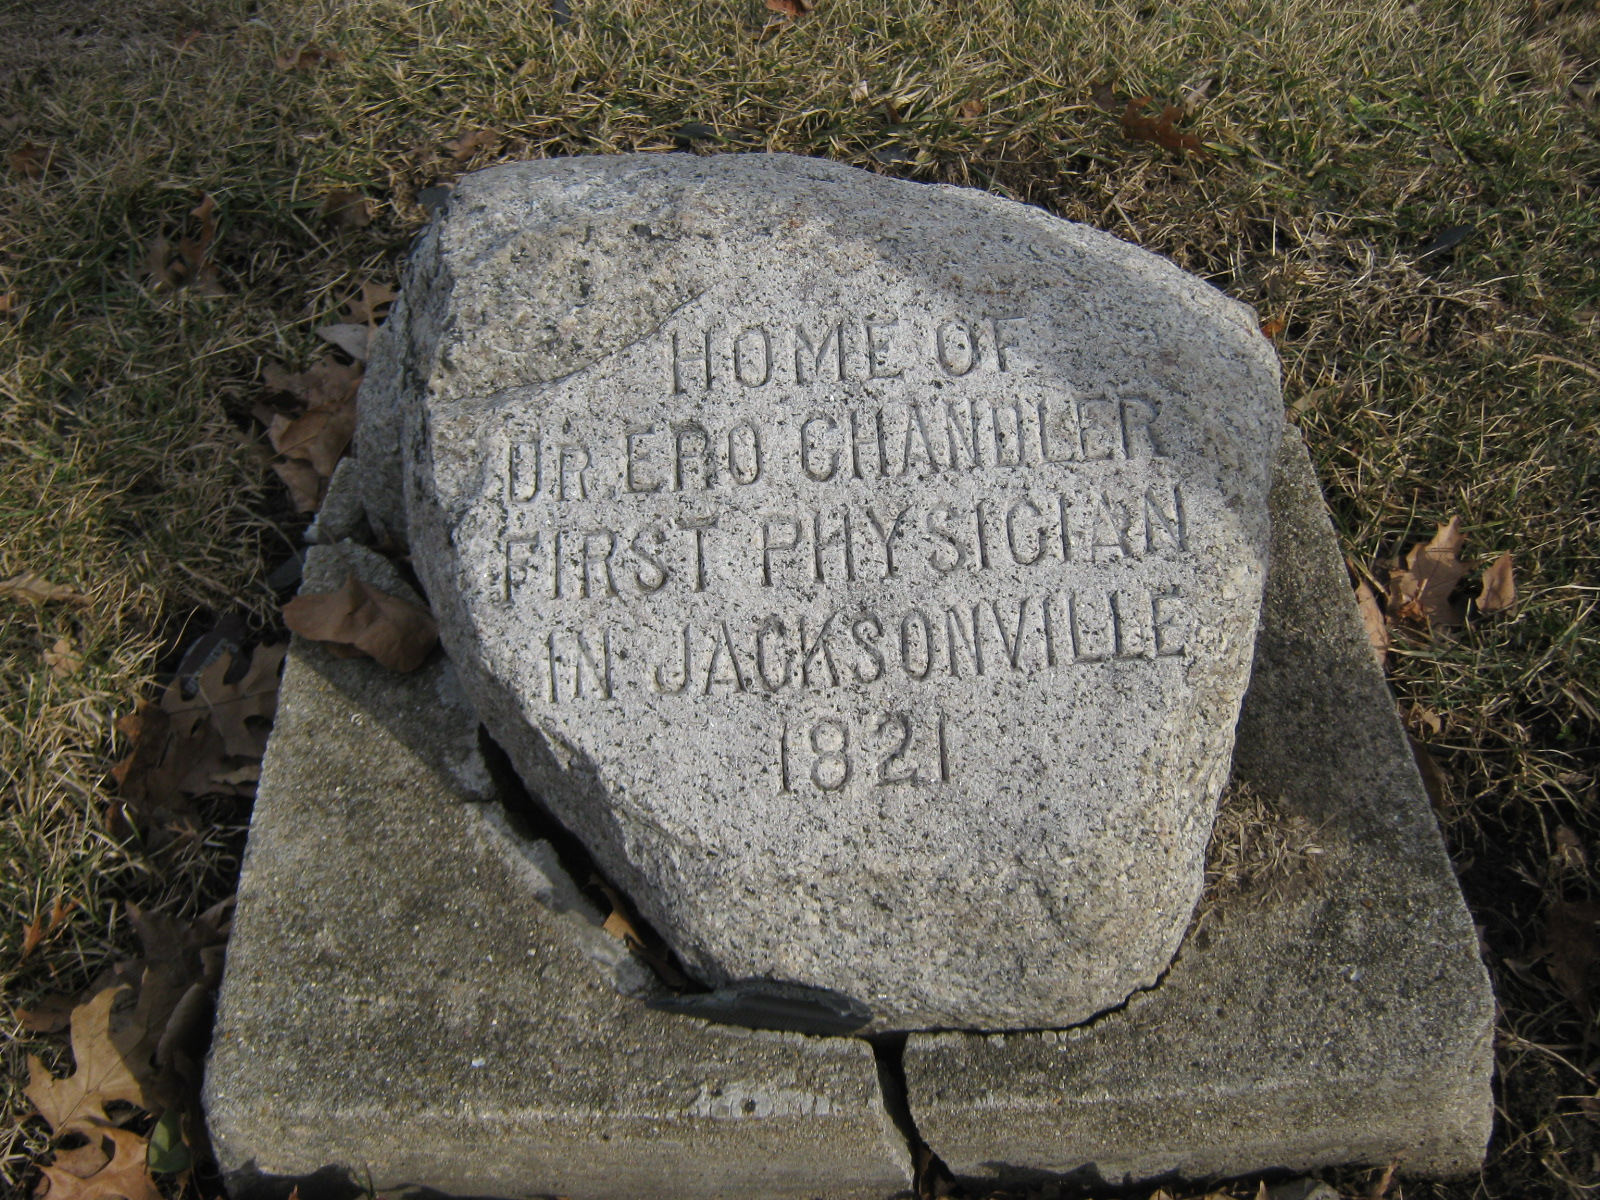 Stone marker of the former home of Ero Chandler.